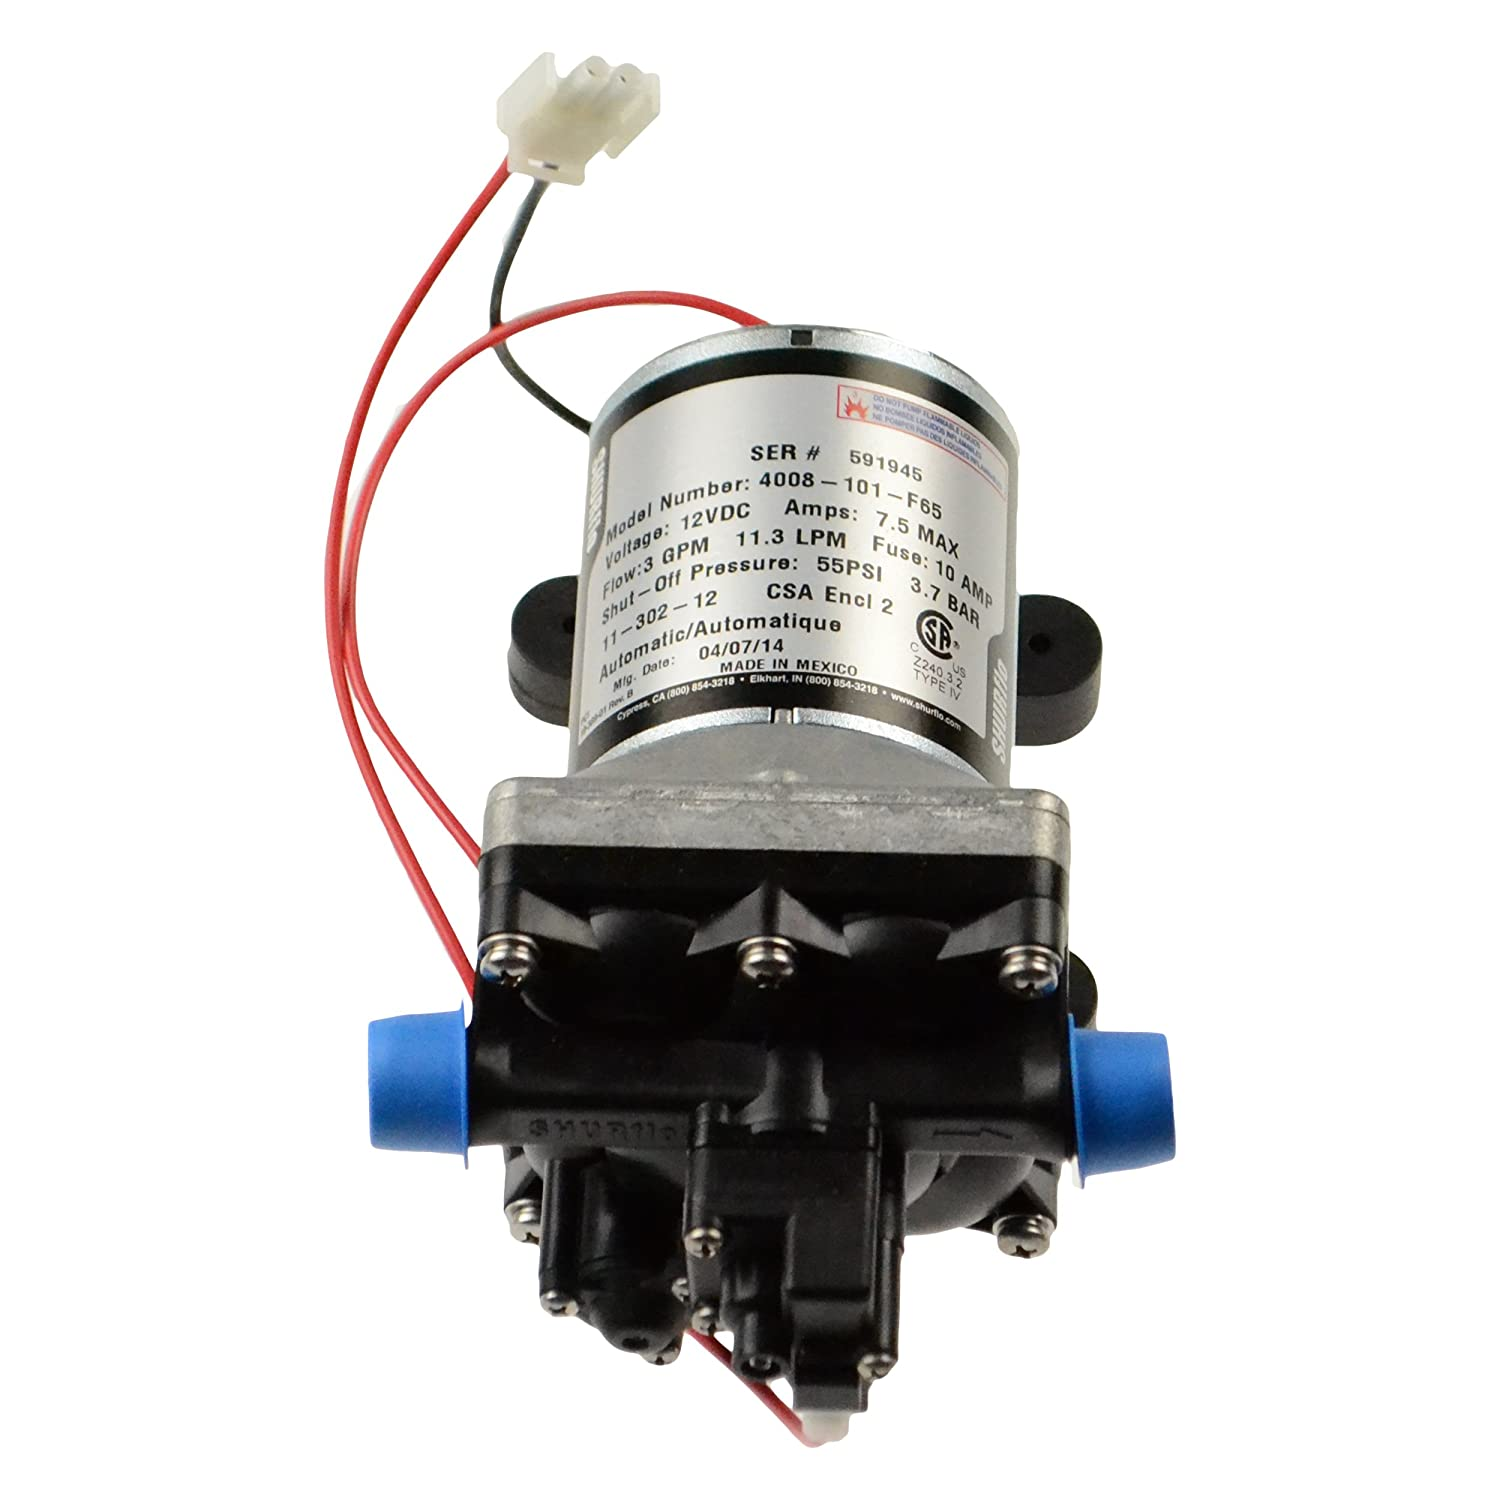 Shurflo 4008-101-F6 12V Water Pump with Bypass 55PSI  цена и фото